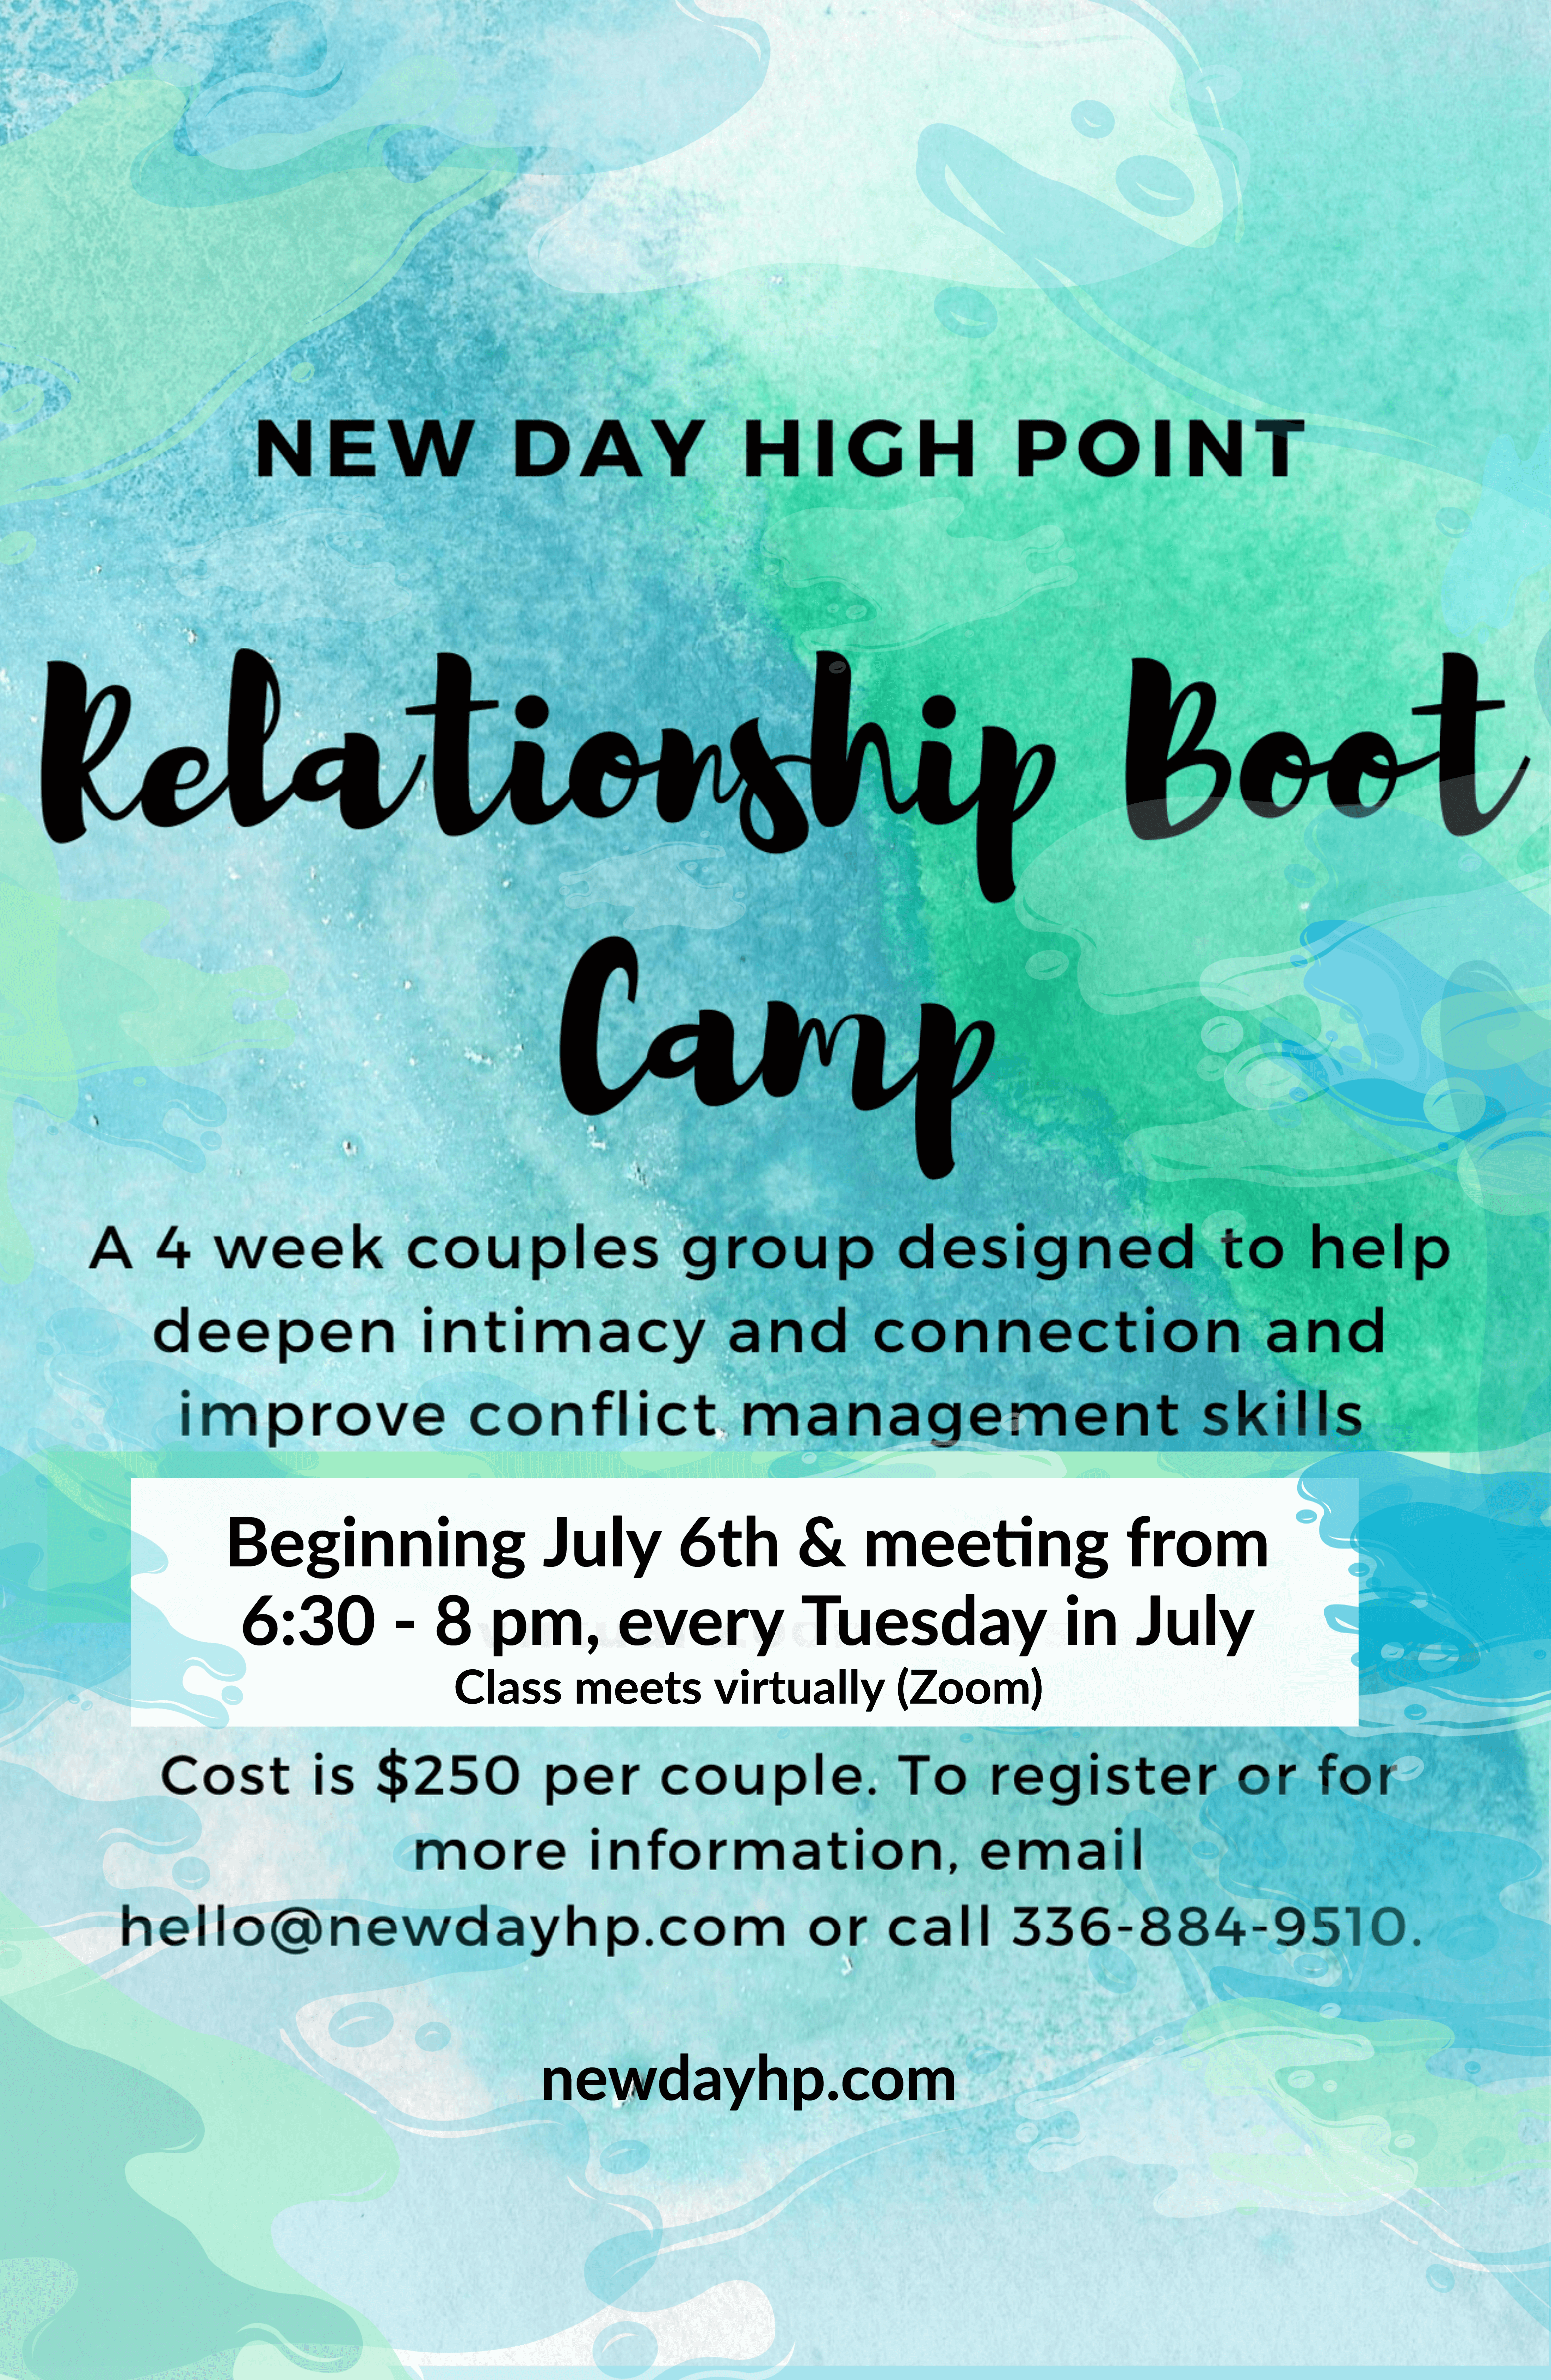 Relationship Boot Camp - Beginning July 6th!